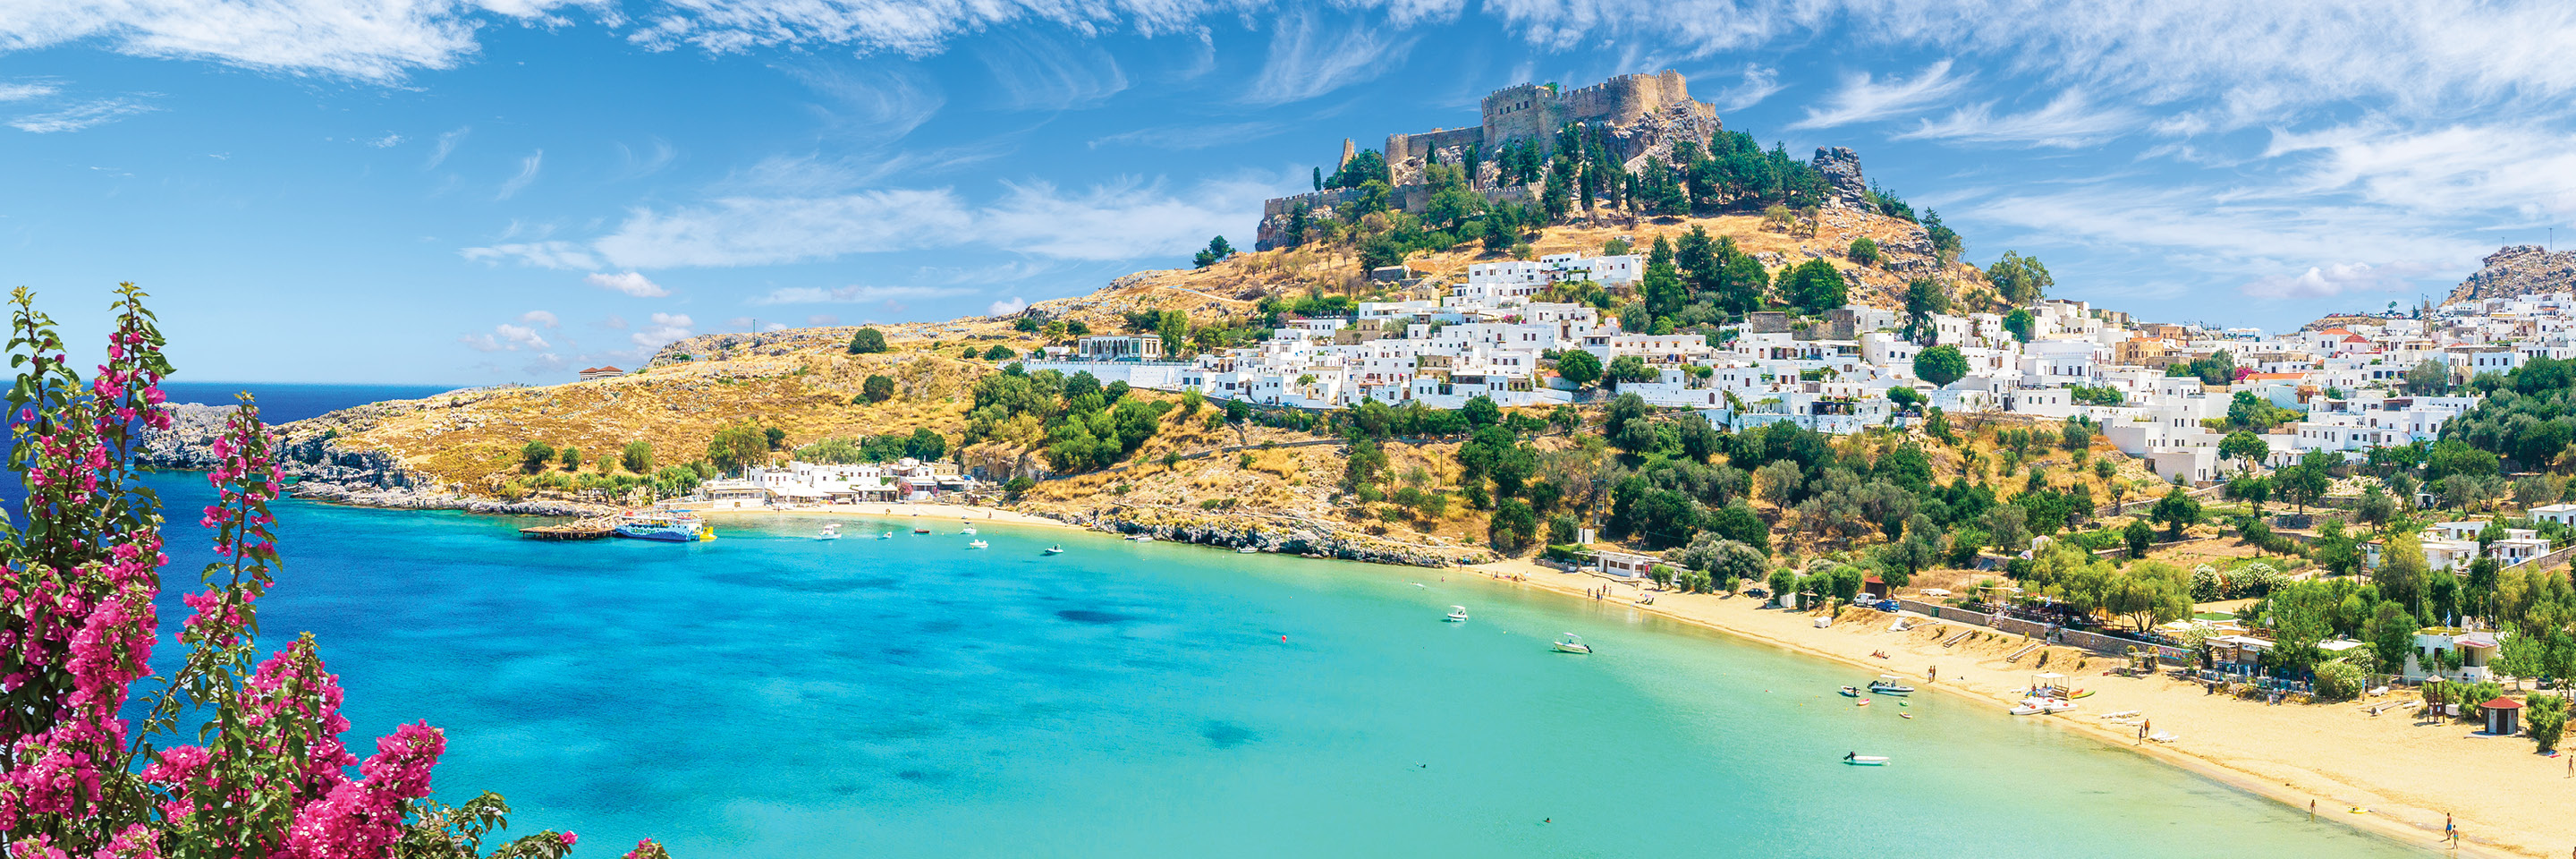 Highlights of Greece Escape plus 4-night Iconic Aegean Cruise